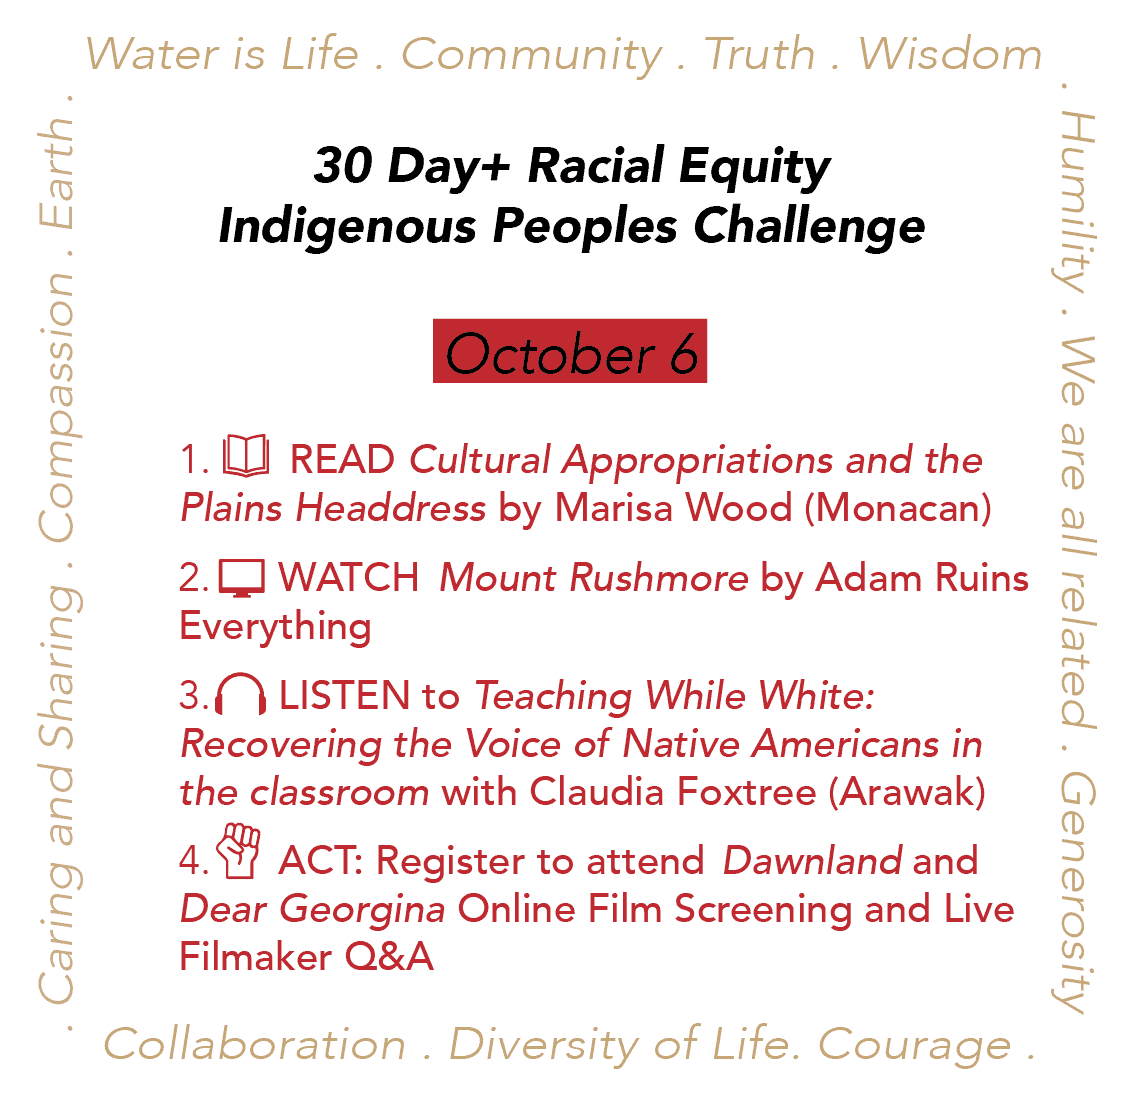 Day 6: Racial Equity Indigenous Peoples Day Challenge